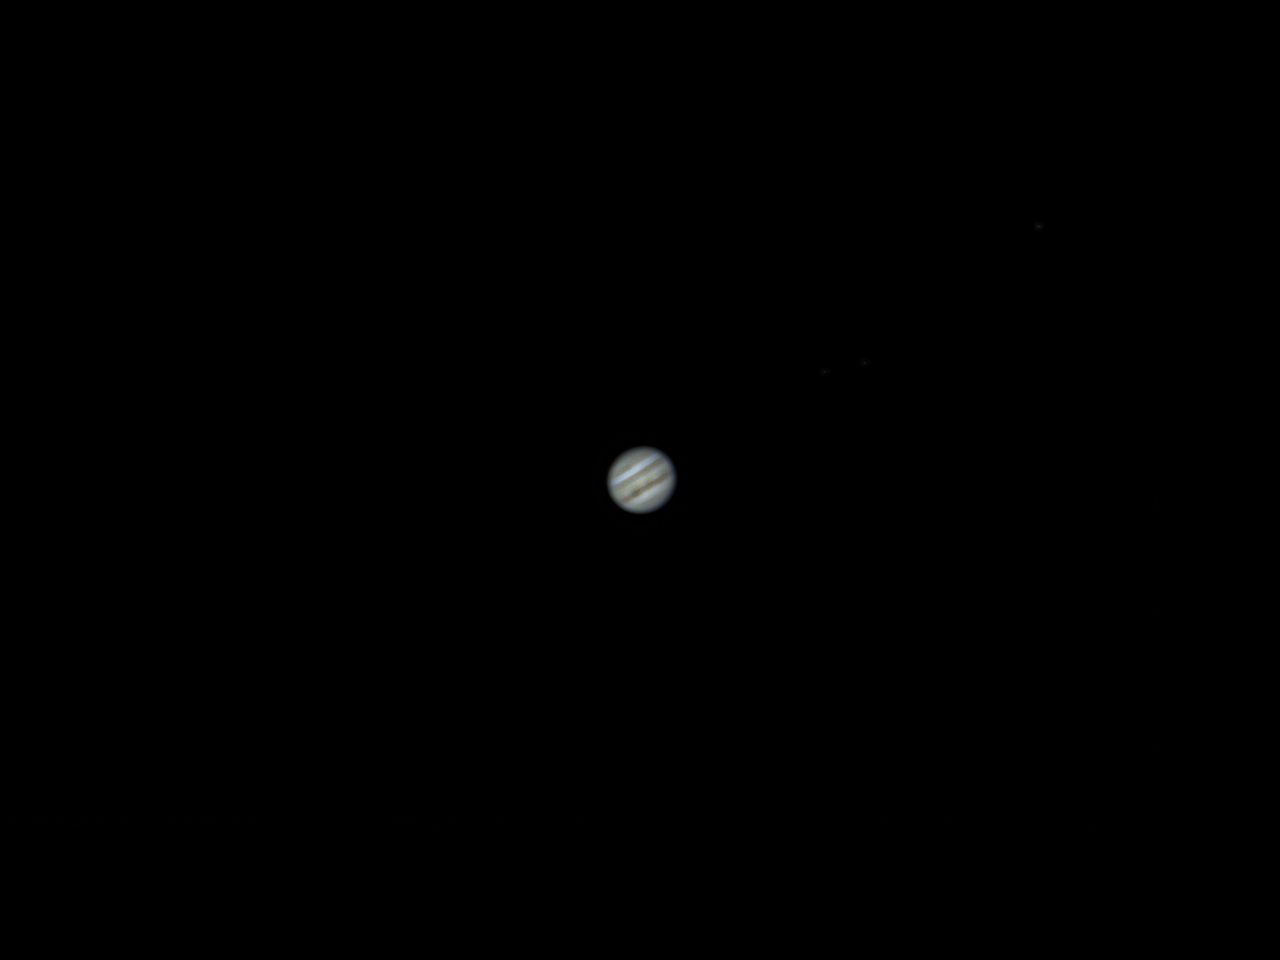 Jupiter captured with William Optics GT 102 and ASI 120 MC-S planetary camera